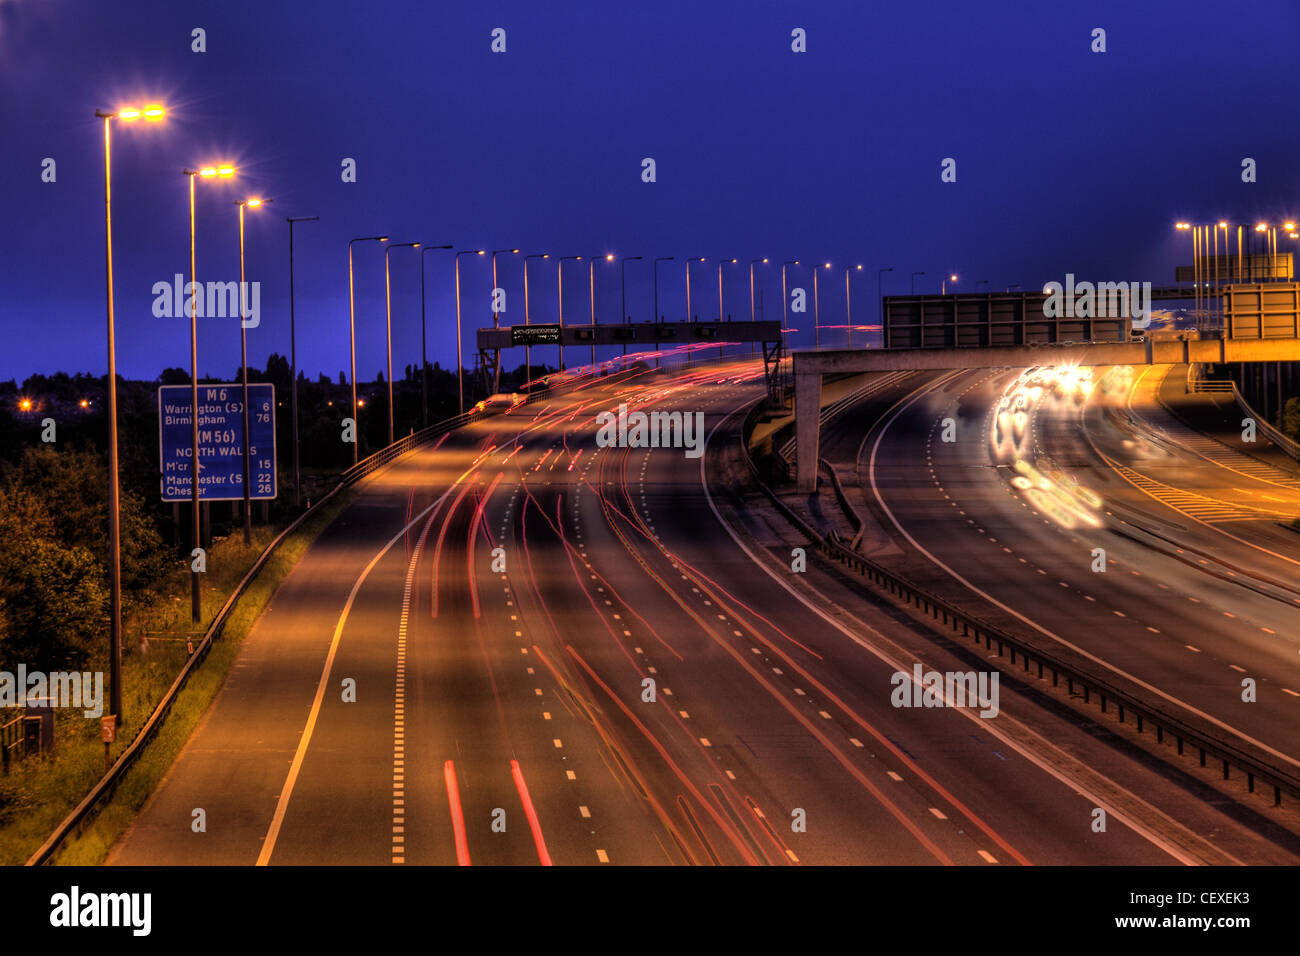 M6 Junction 21 at dusk,night,shot,slow,exposure,blue,hour,blue-hour,bluehour,gotonysmith,Birchwood,Warrington,motorway,freeway,turnpike,england,english,british,car,trails,cartrail,cartrails,long,speed,speeding,70,mph,gotonysmith,Motorways,freeway,Buy Pictures of,Buy Images Of